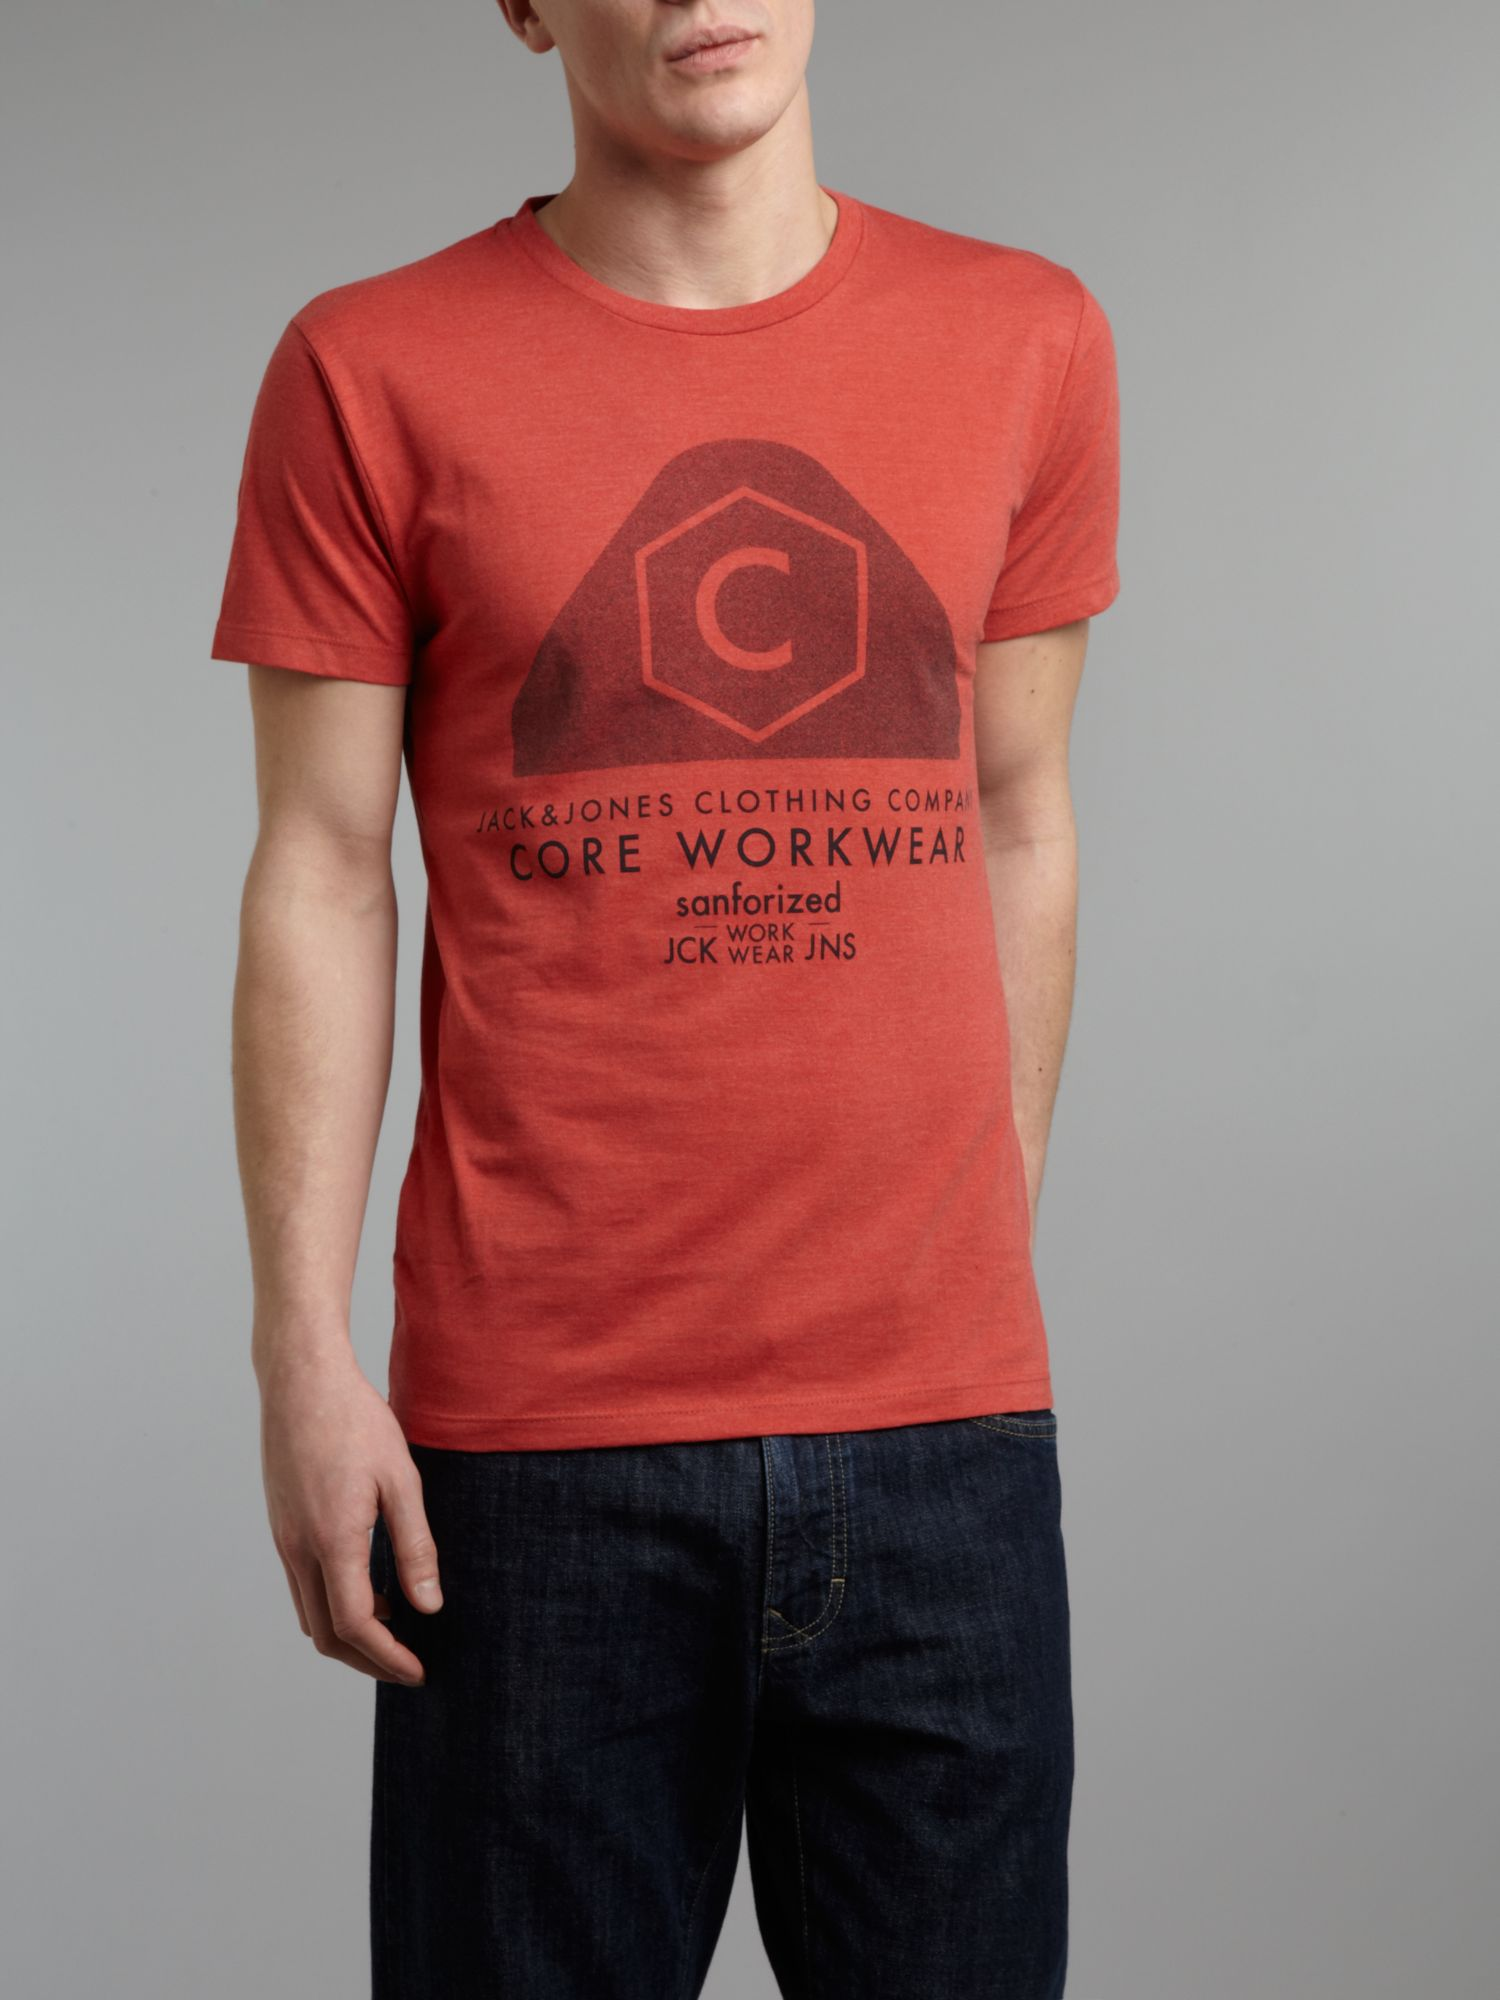 Core workwear graphic T-shirt